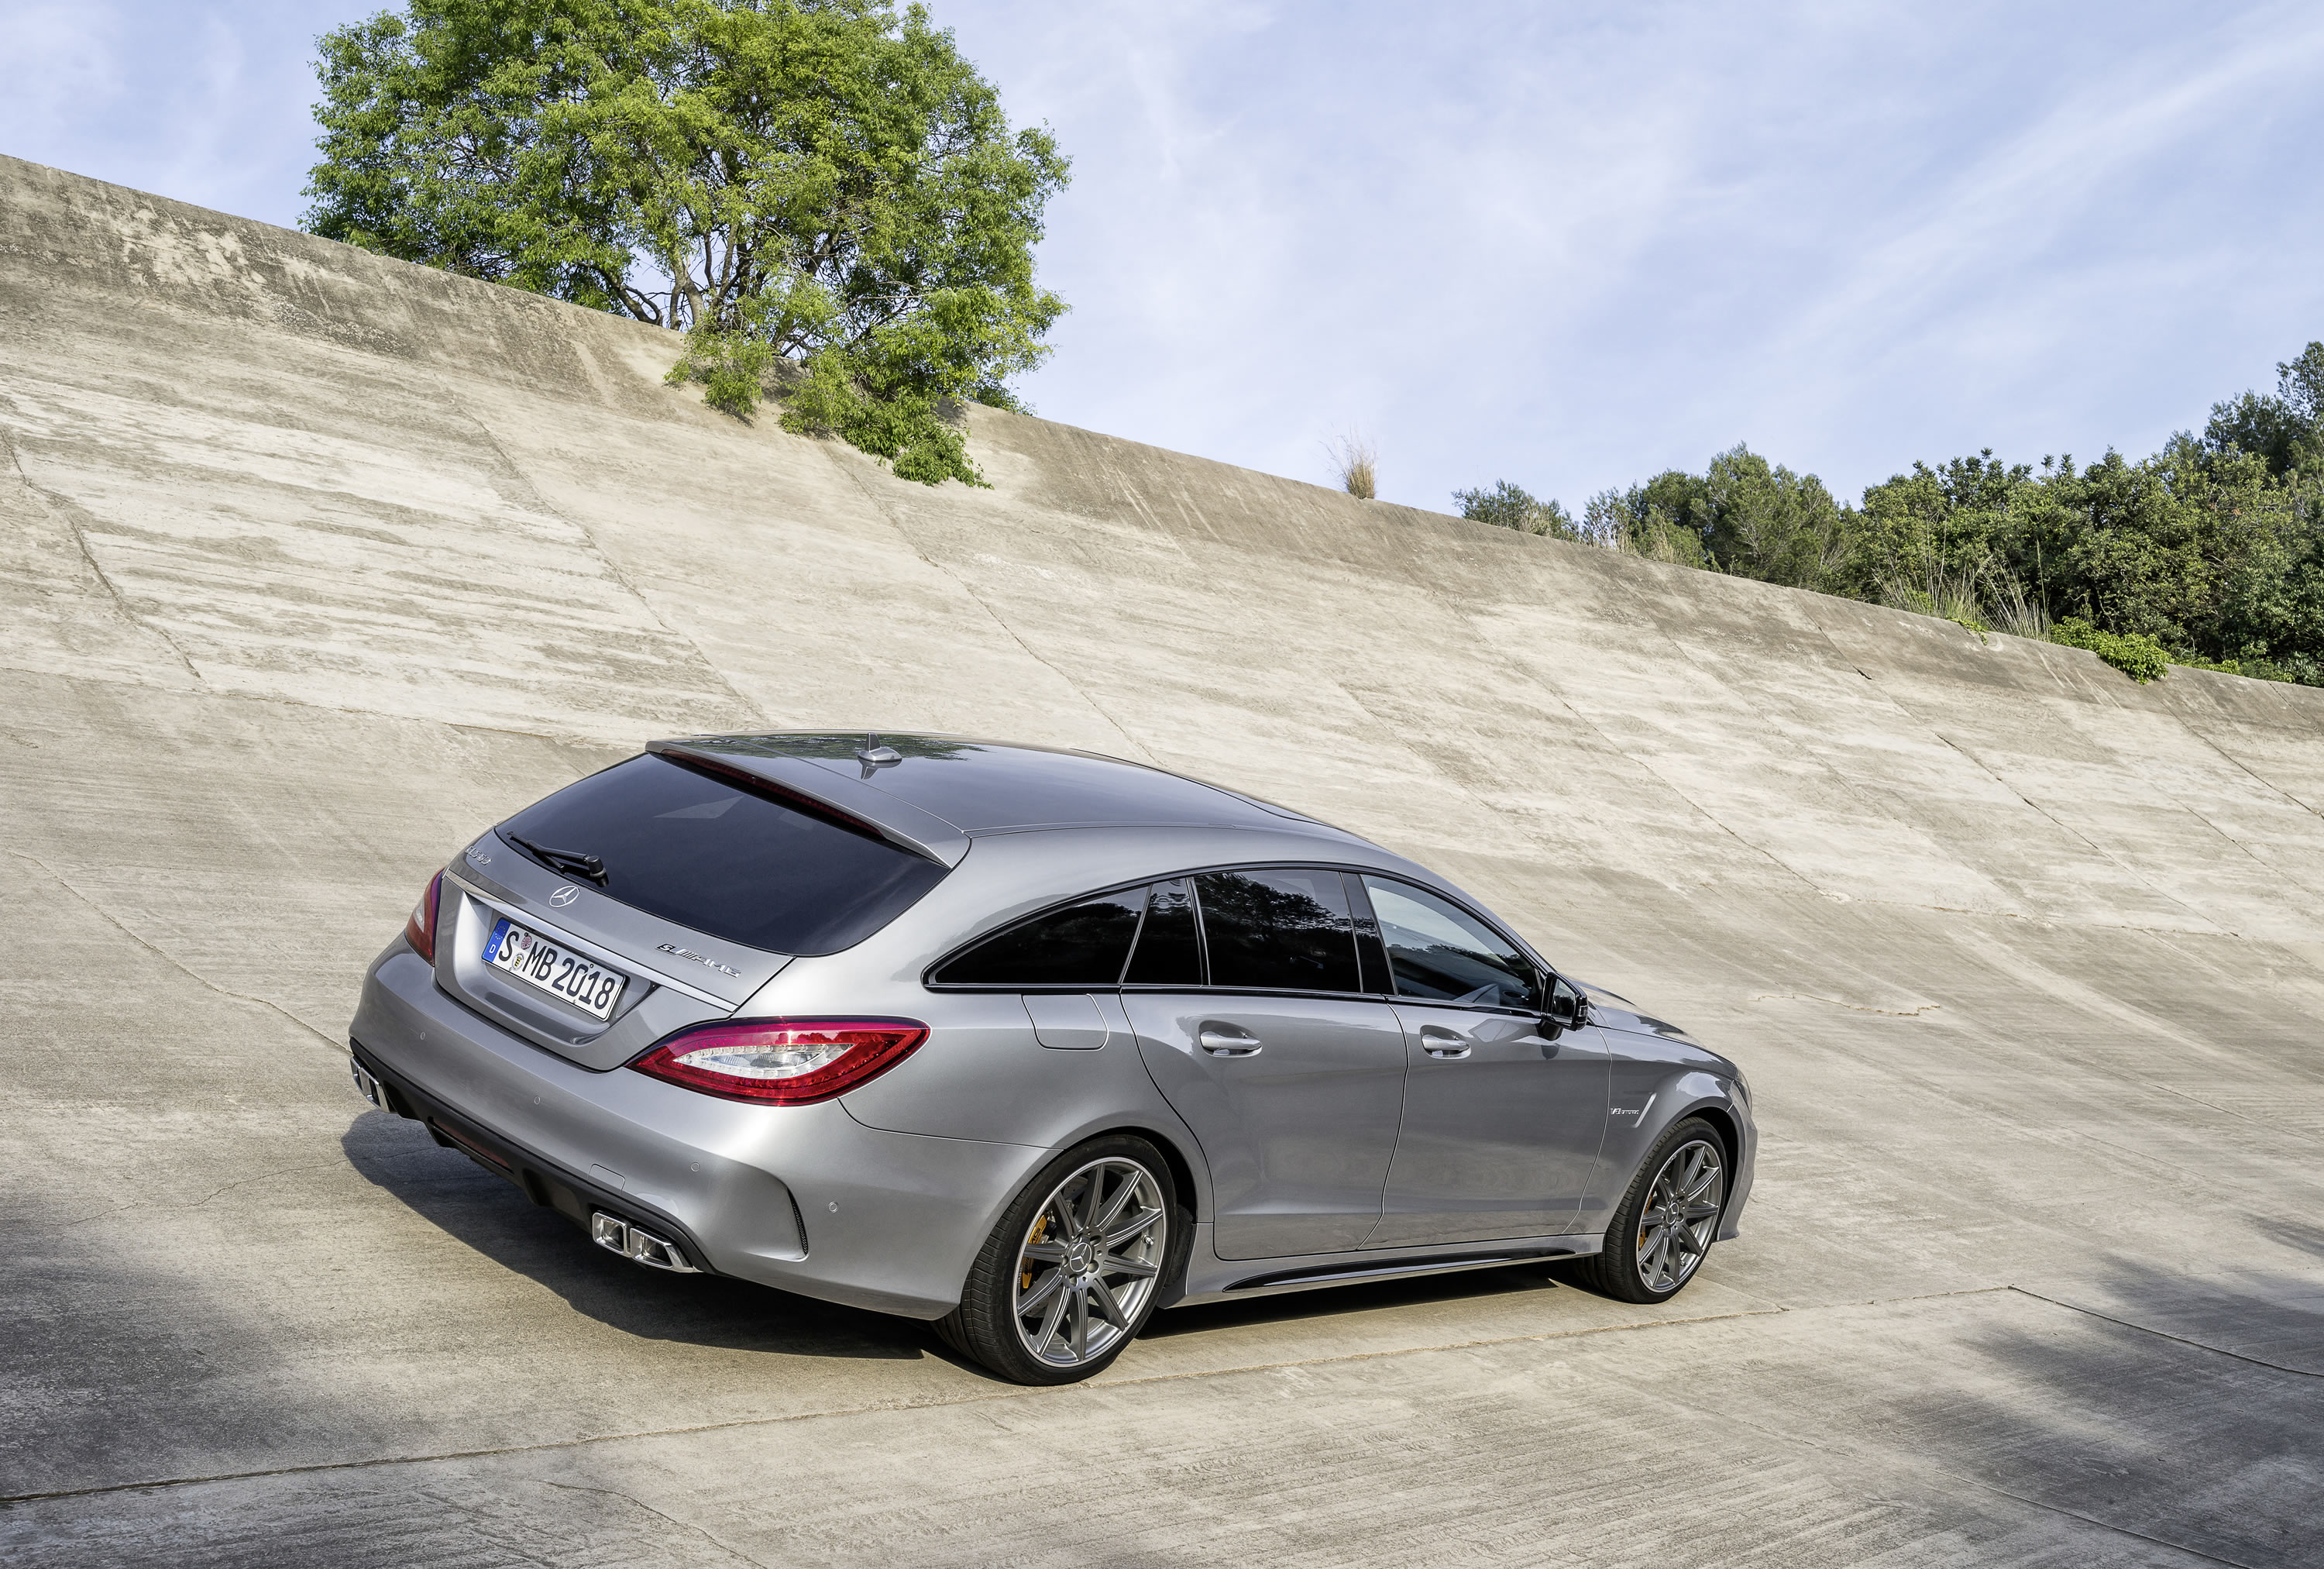 2015 mercedes benz cls63 amg s model shooting brake photos specs and review rs. Black Bedroom Furniture Sets. Home Design Ideas